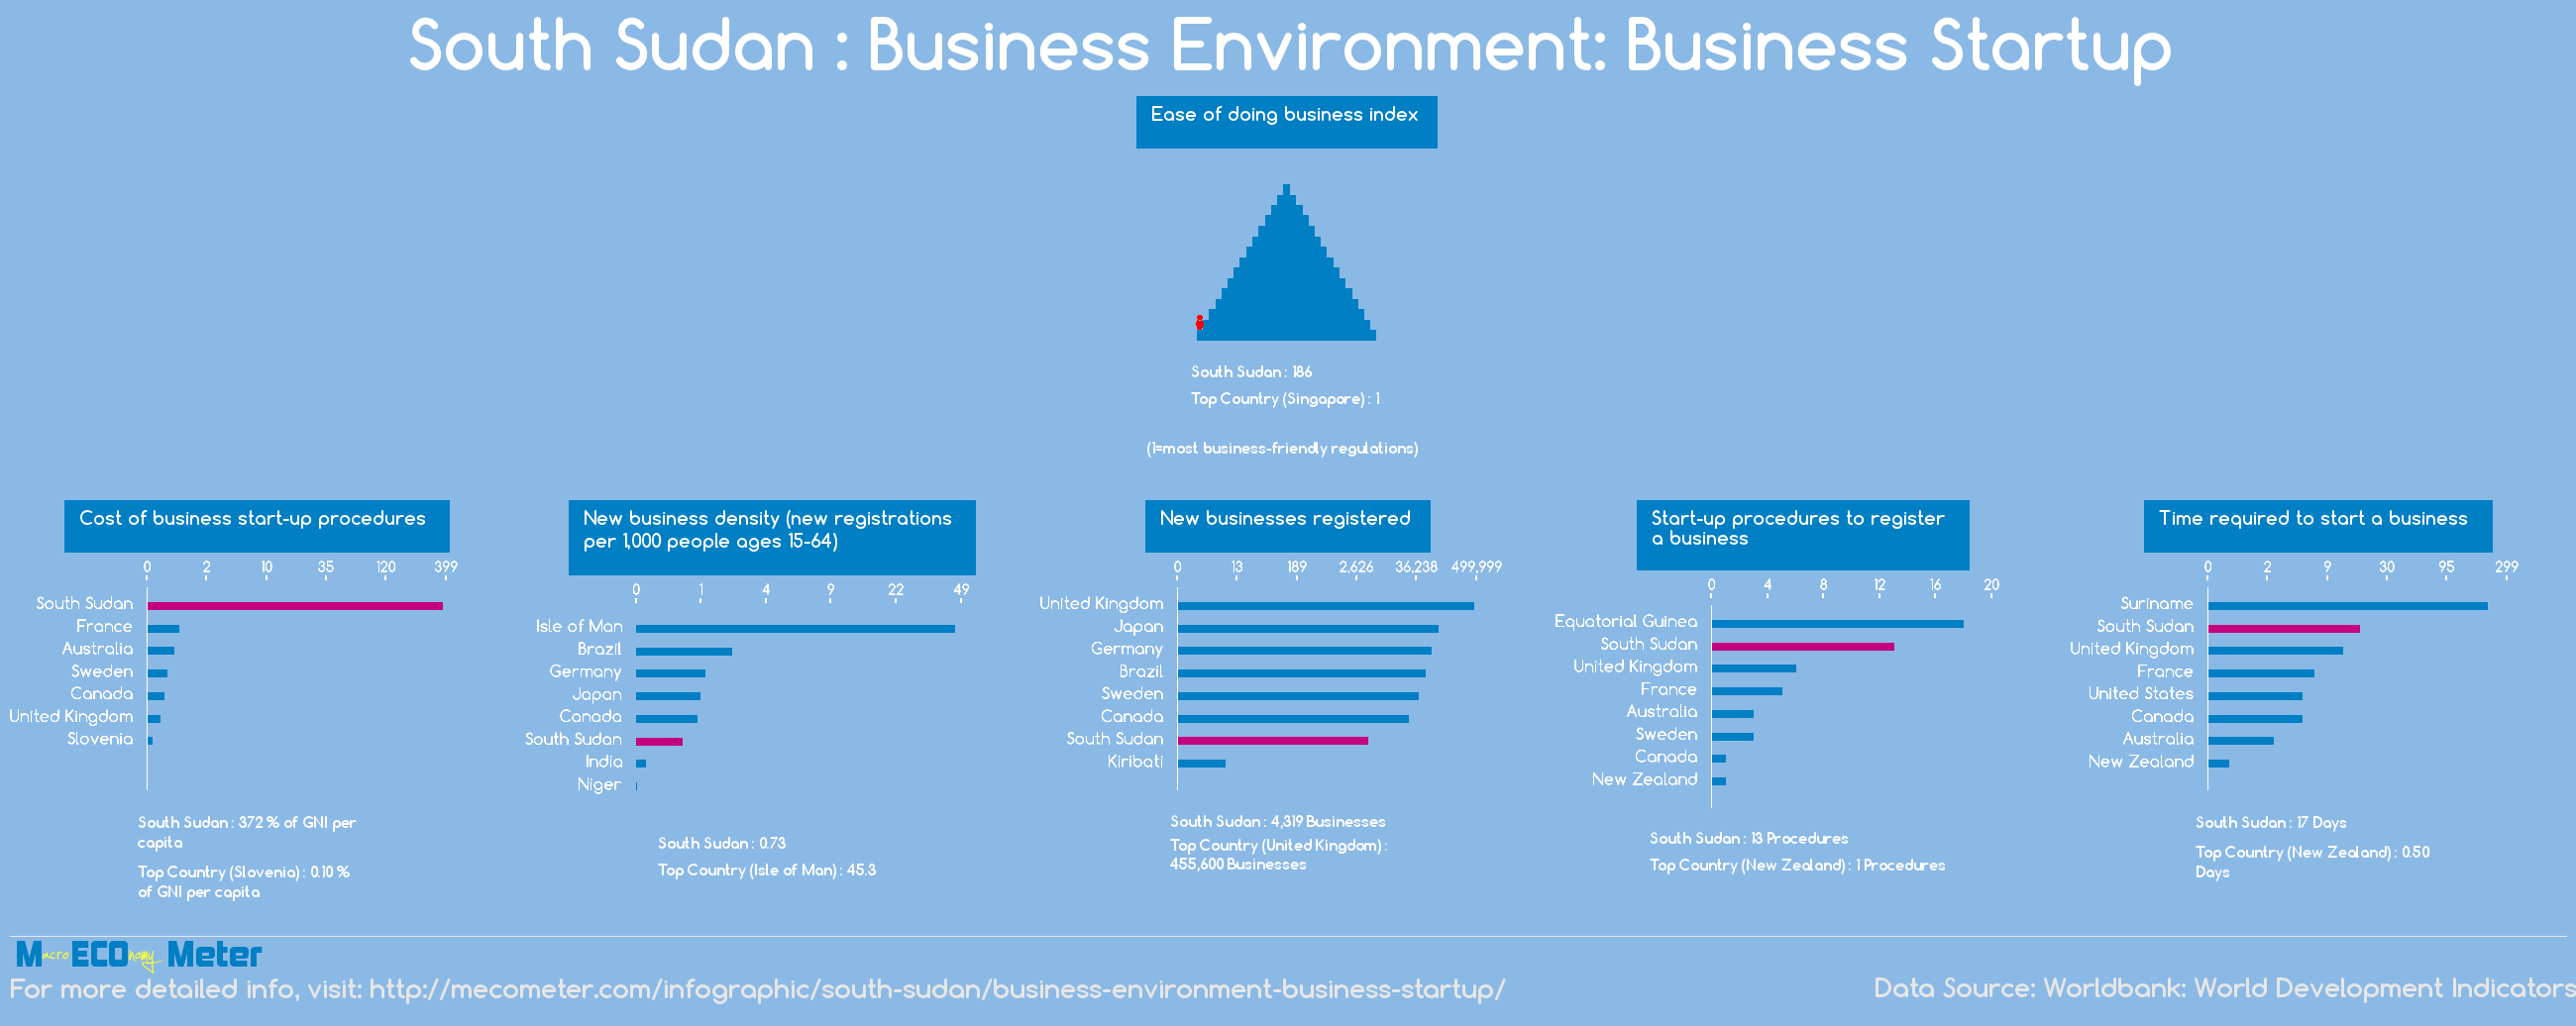 South Sudan : Business Environment: Business Startup